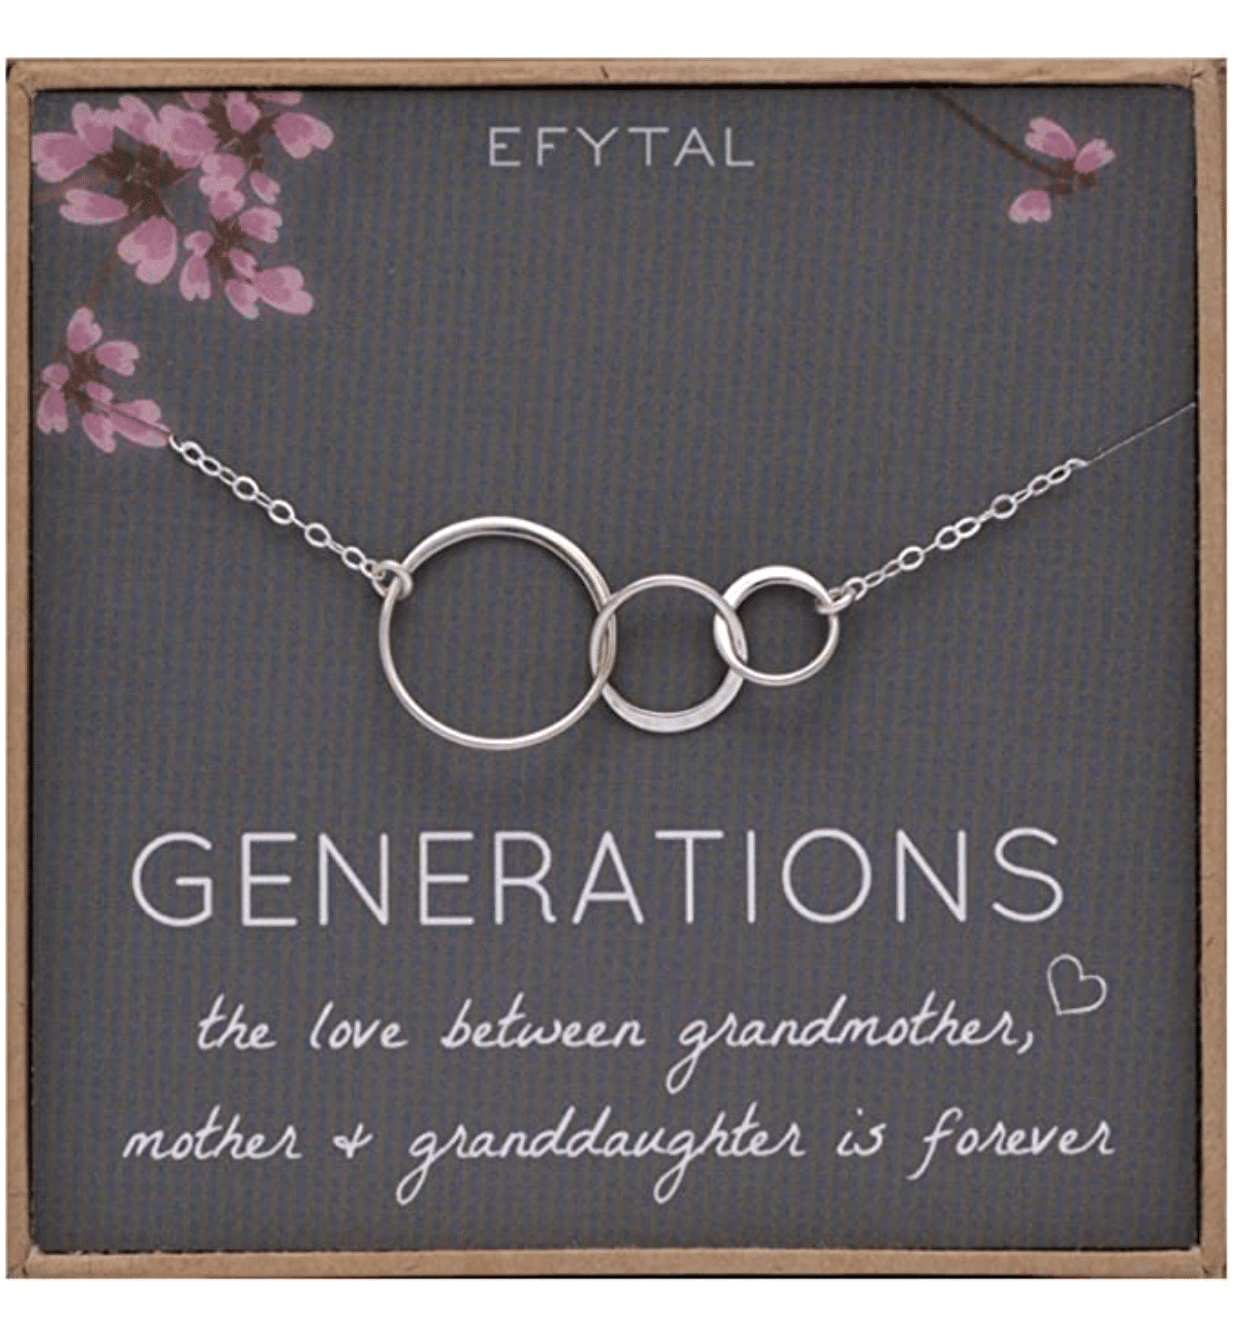 27 Cheerful Gifts For Grandma To Brighten Her Day In 2021 Giftlab